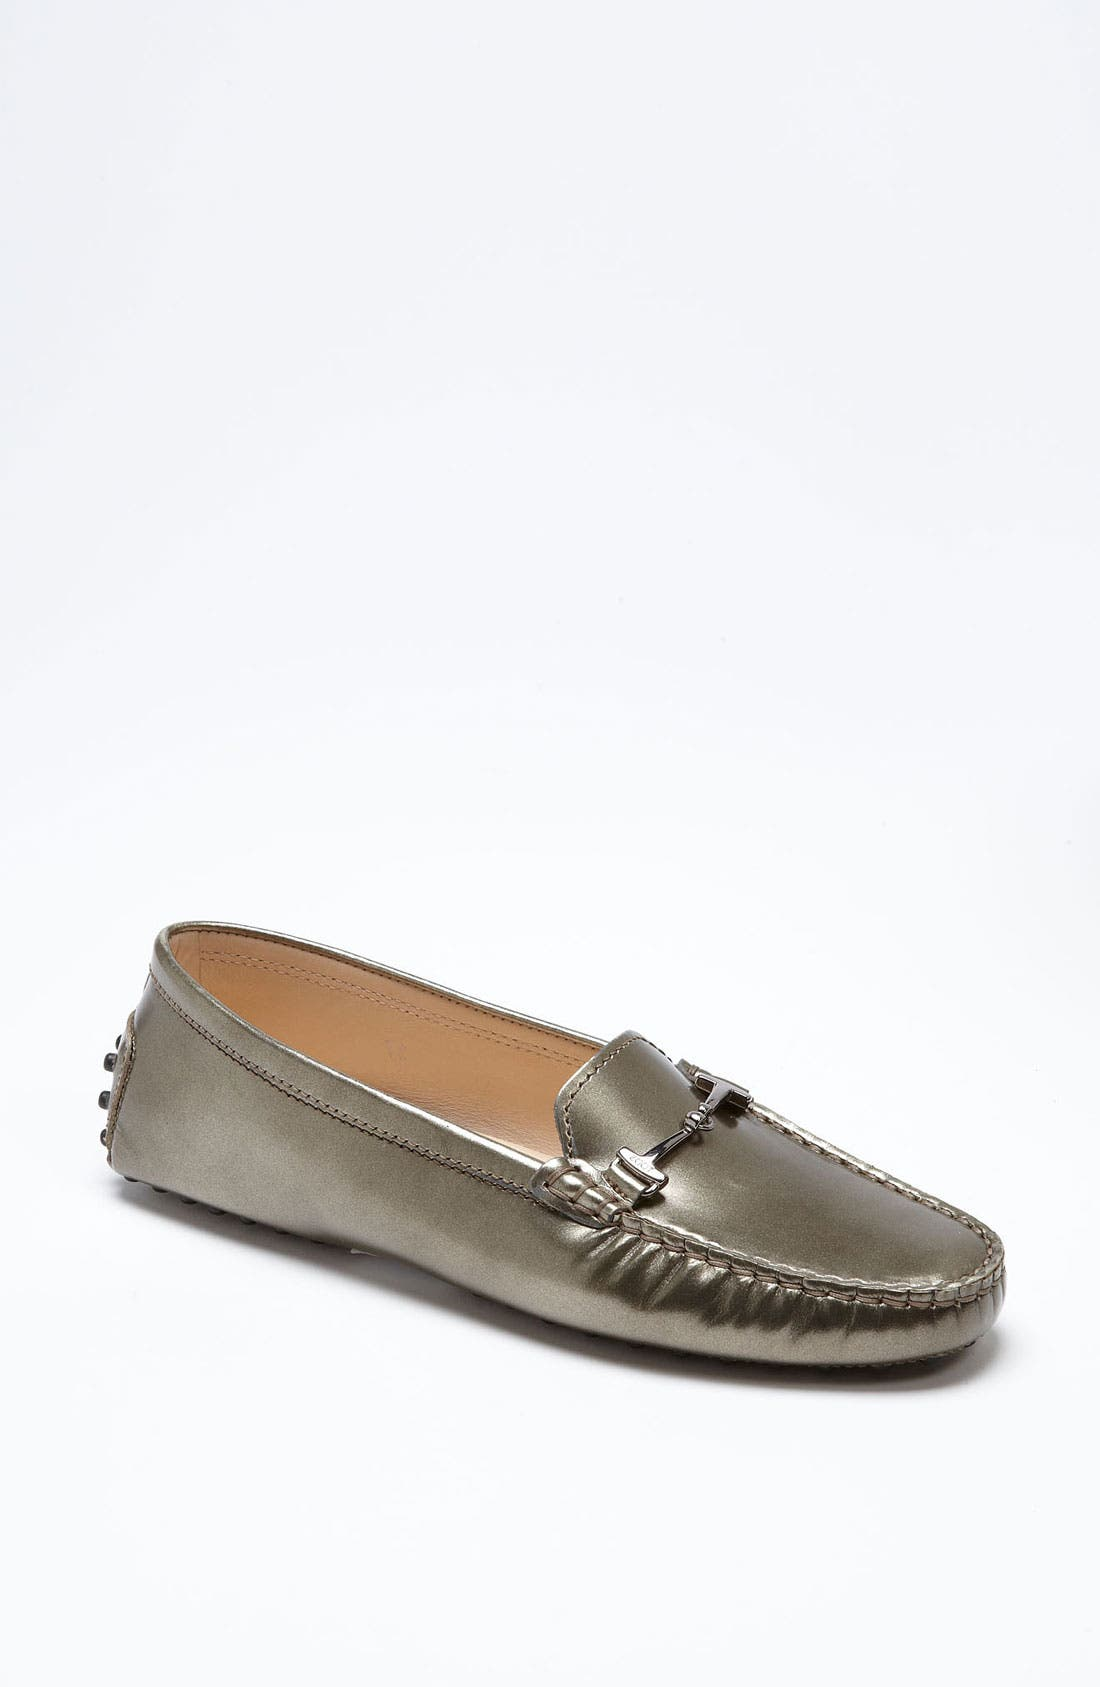 Main Image - Tod's 'Heaven' Moccasin